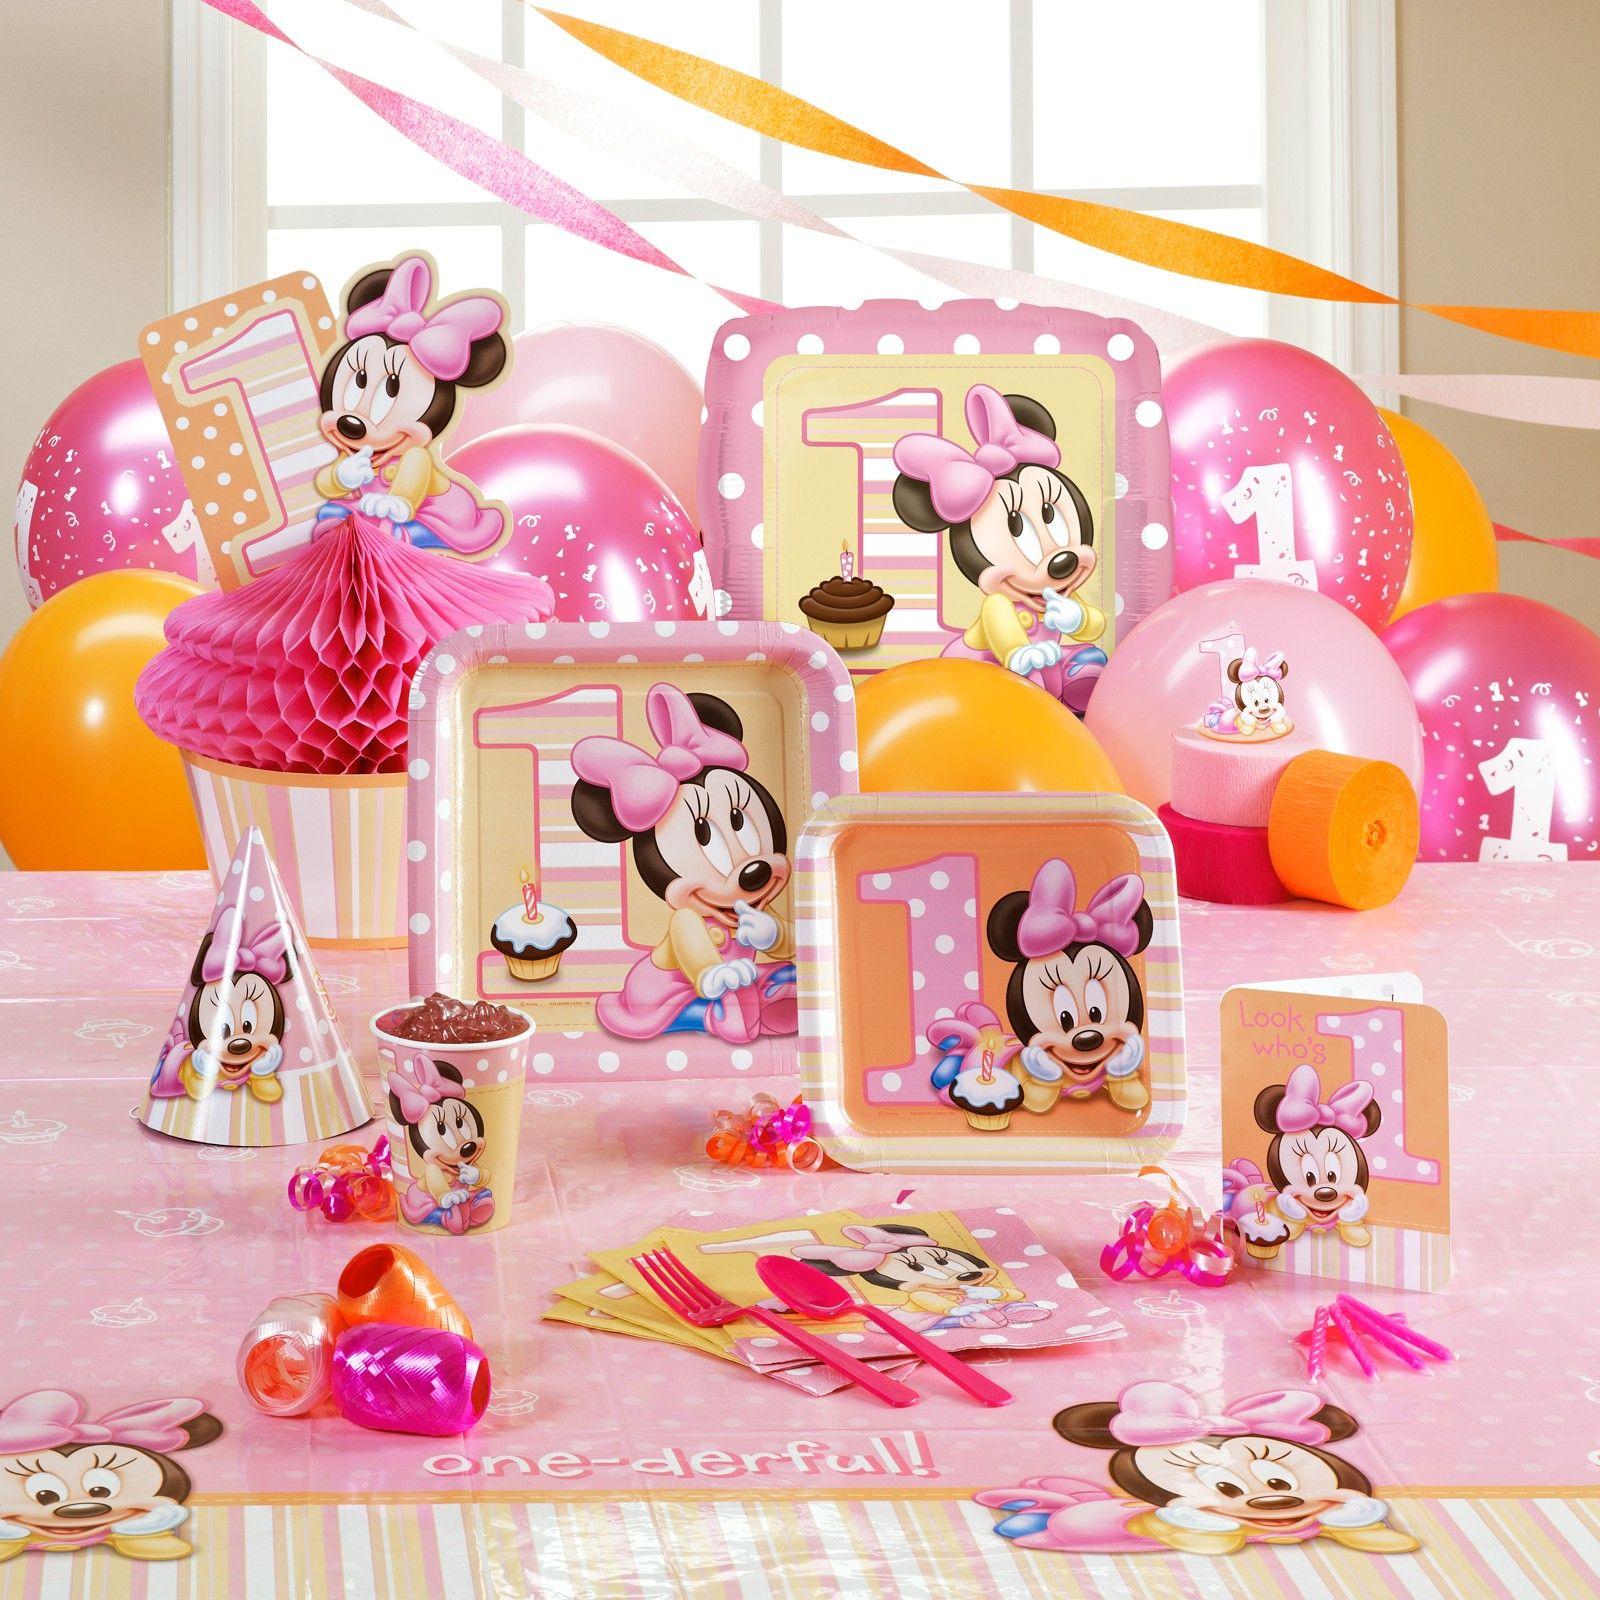 Minnie Mouse 1st Birthday Party Ph D Serts Cakes Minnie Mouse Birthday Party Supplies Minnie Mouse 1st Birthday 1st Birthday Party Decorations